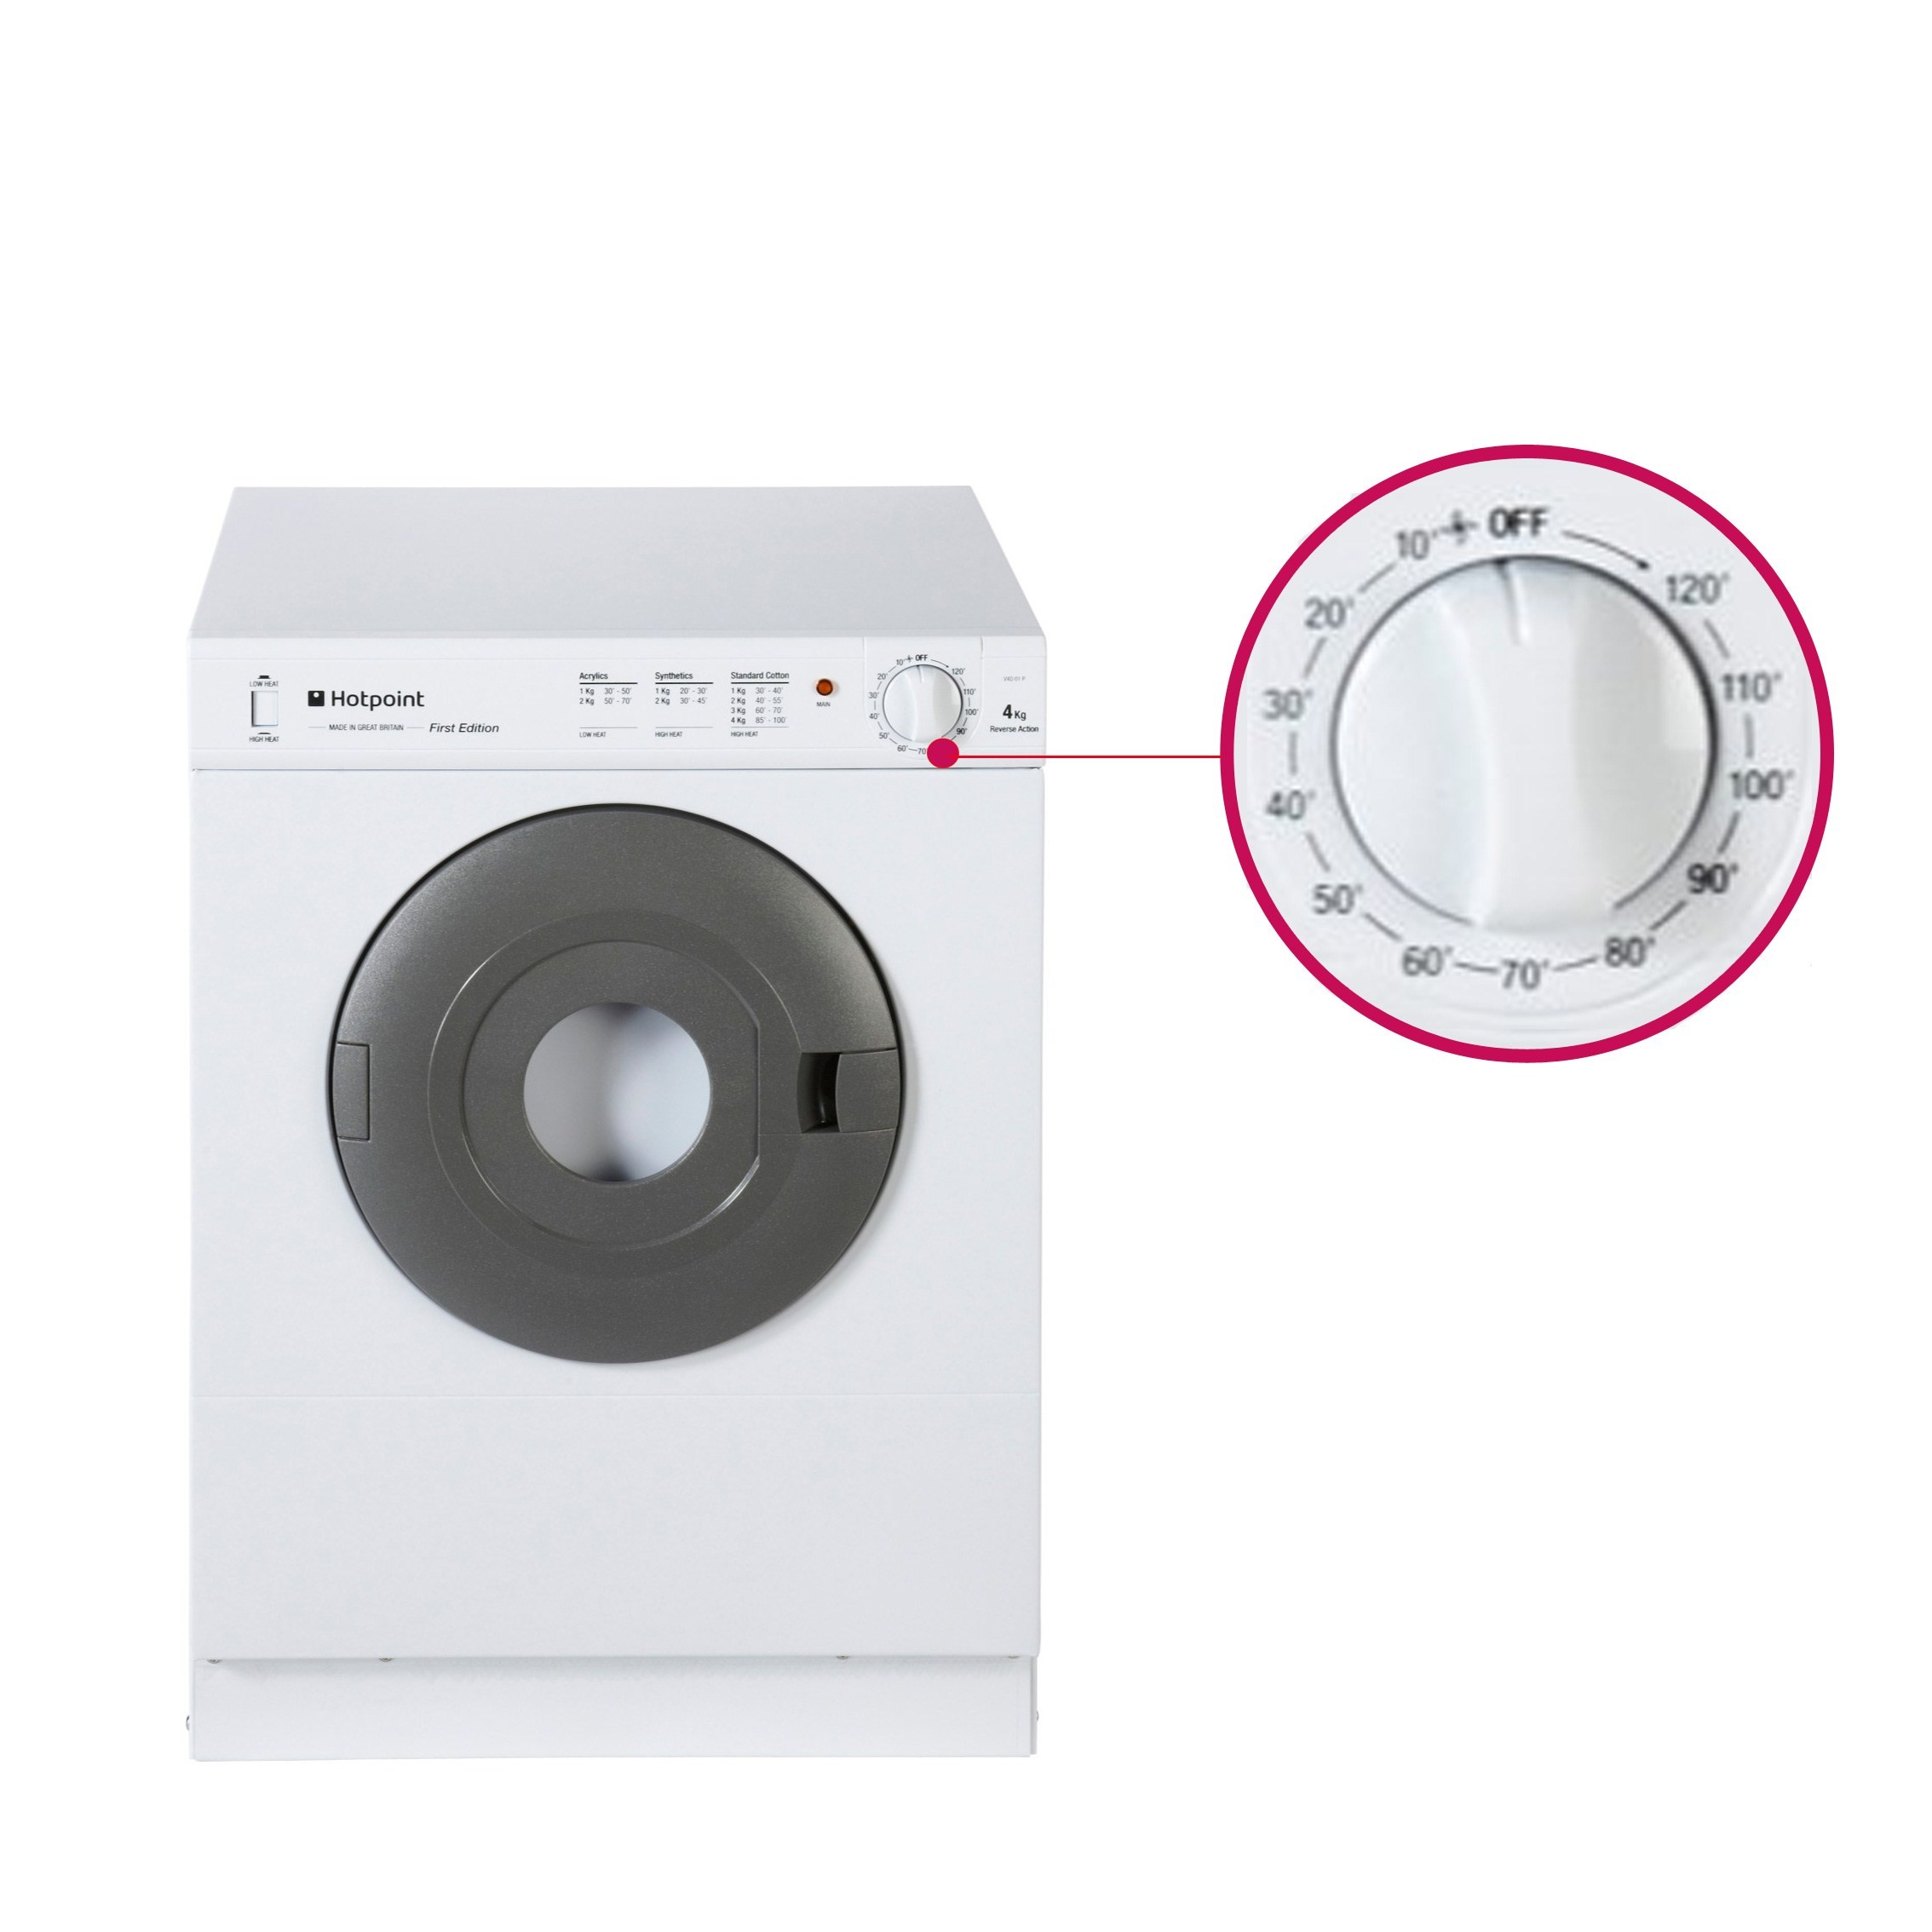 Grade a2 hotpoint v4d01p 4kg small vented tumble dryer white 77363980 1 v4d01p ebay - Tumble dryer for small space pict ...